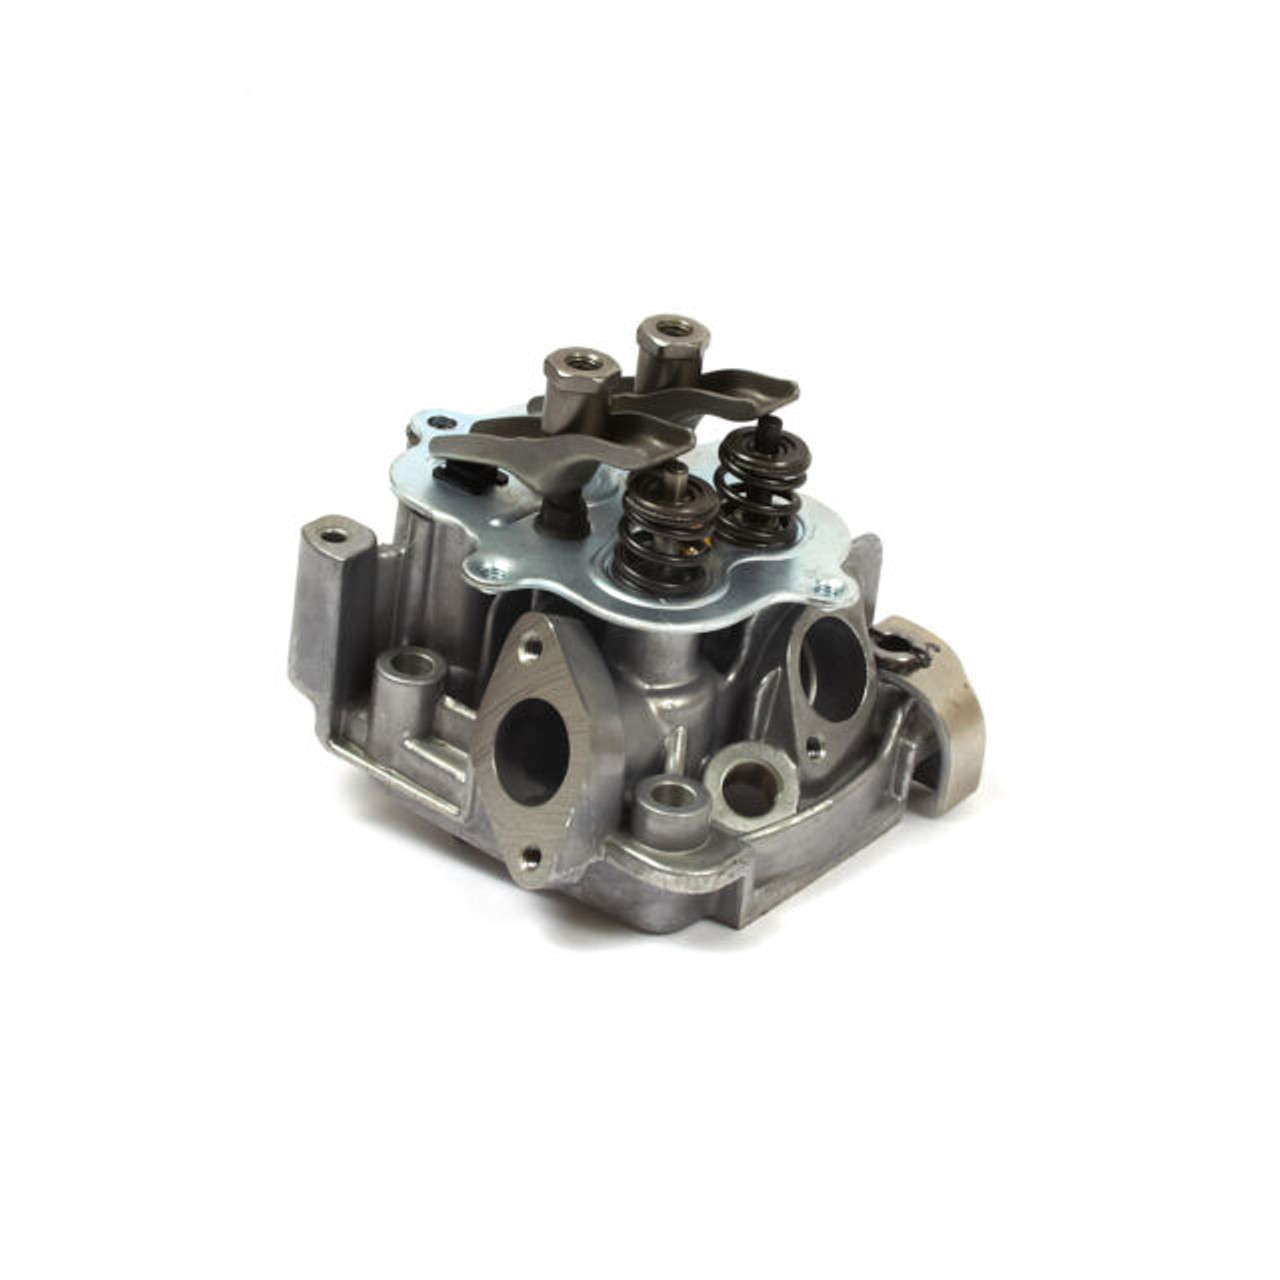 Briggs LO206 Cylinder Head Assembly